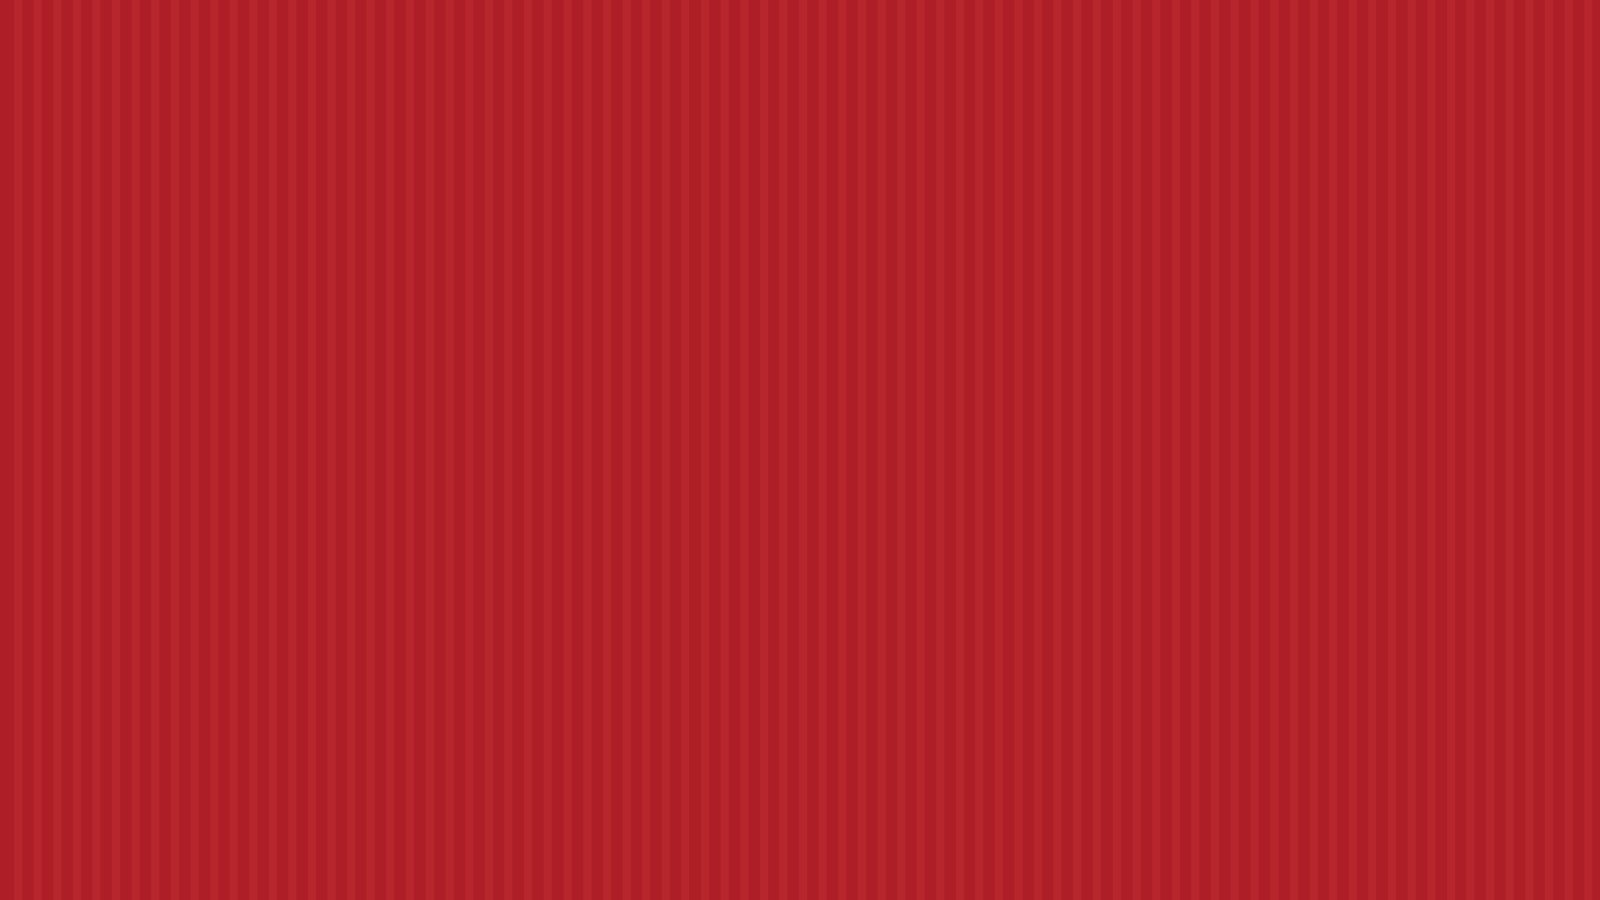 red color background hd - photo #16